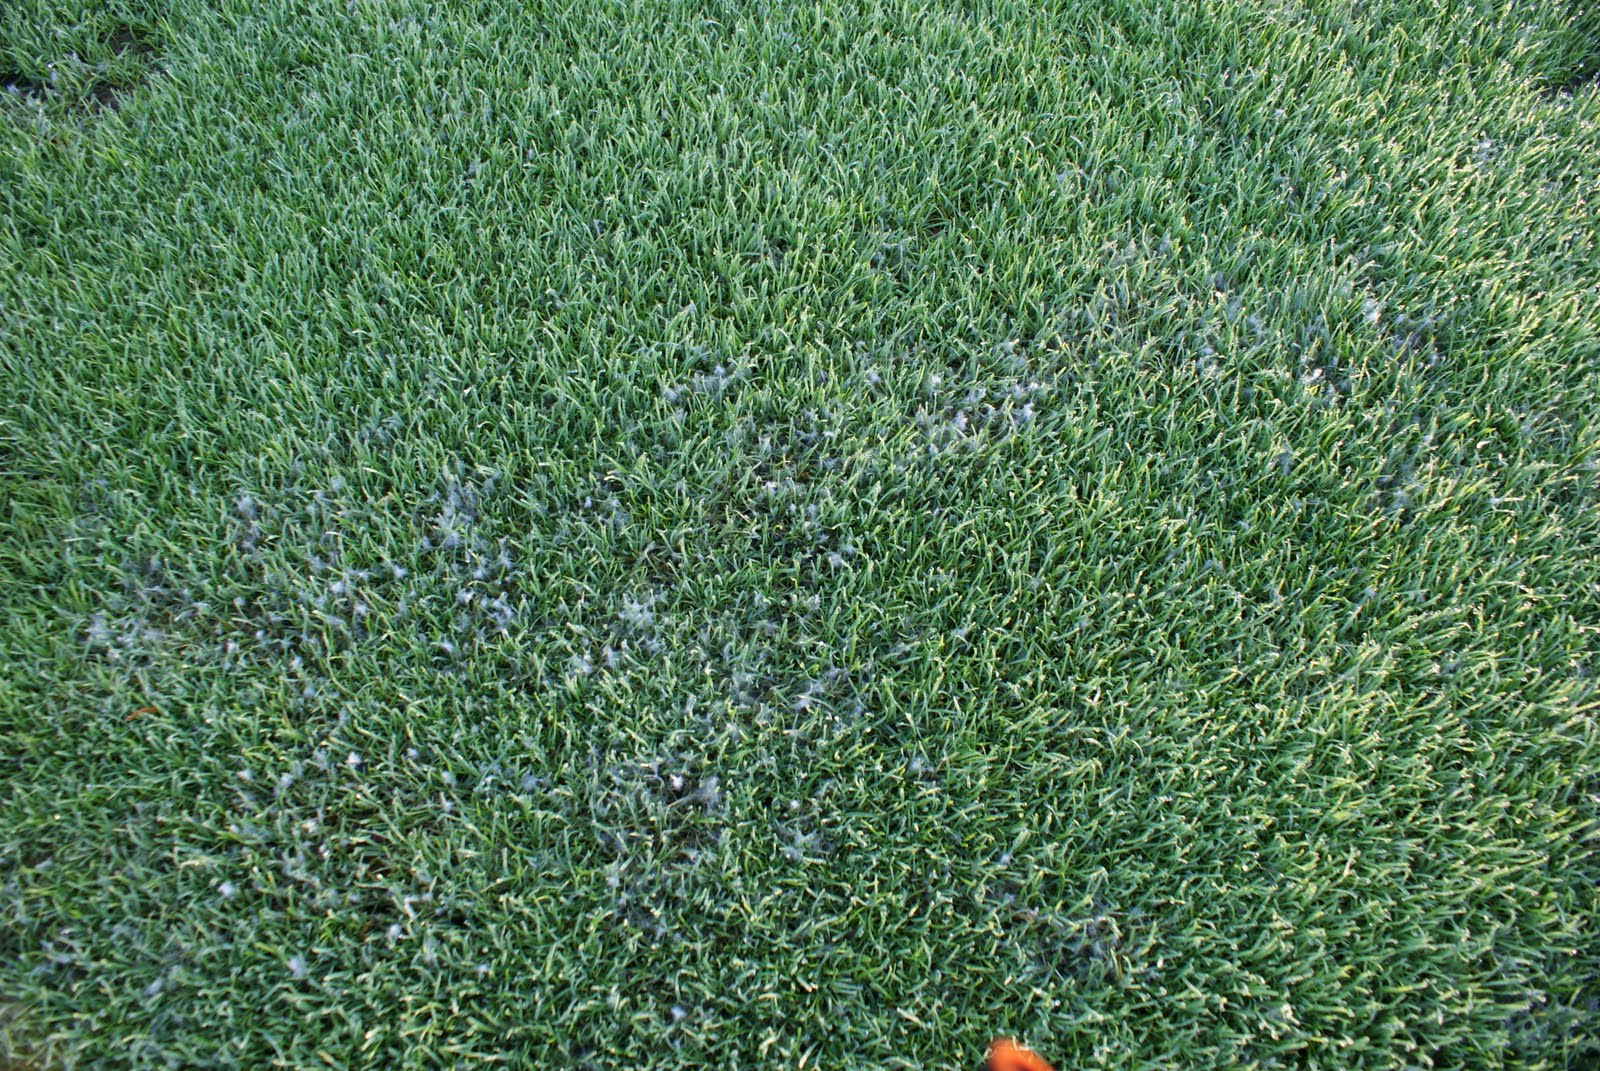 Sugar Creek Golf Course Blog: Turf Notes: Pythium Blight